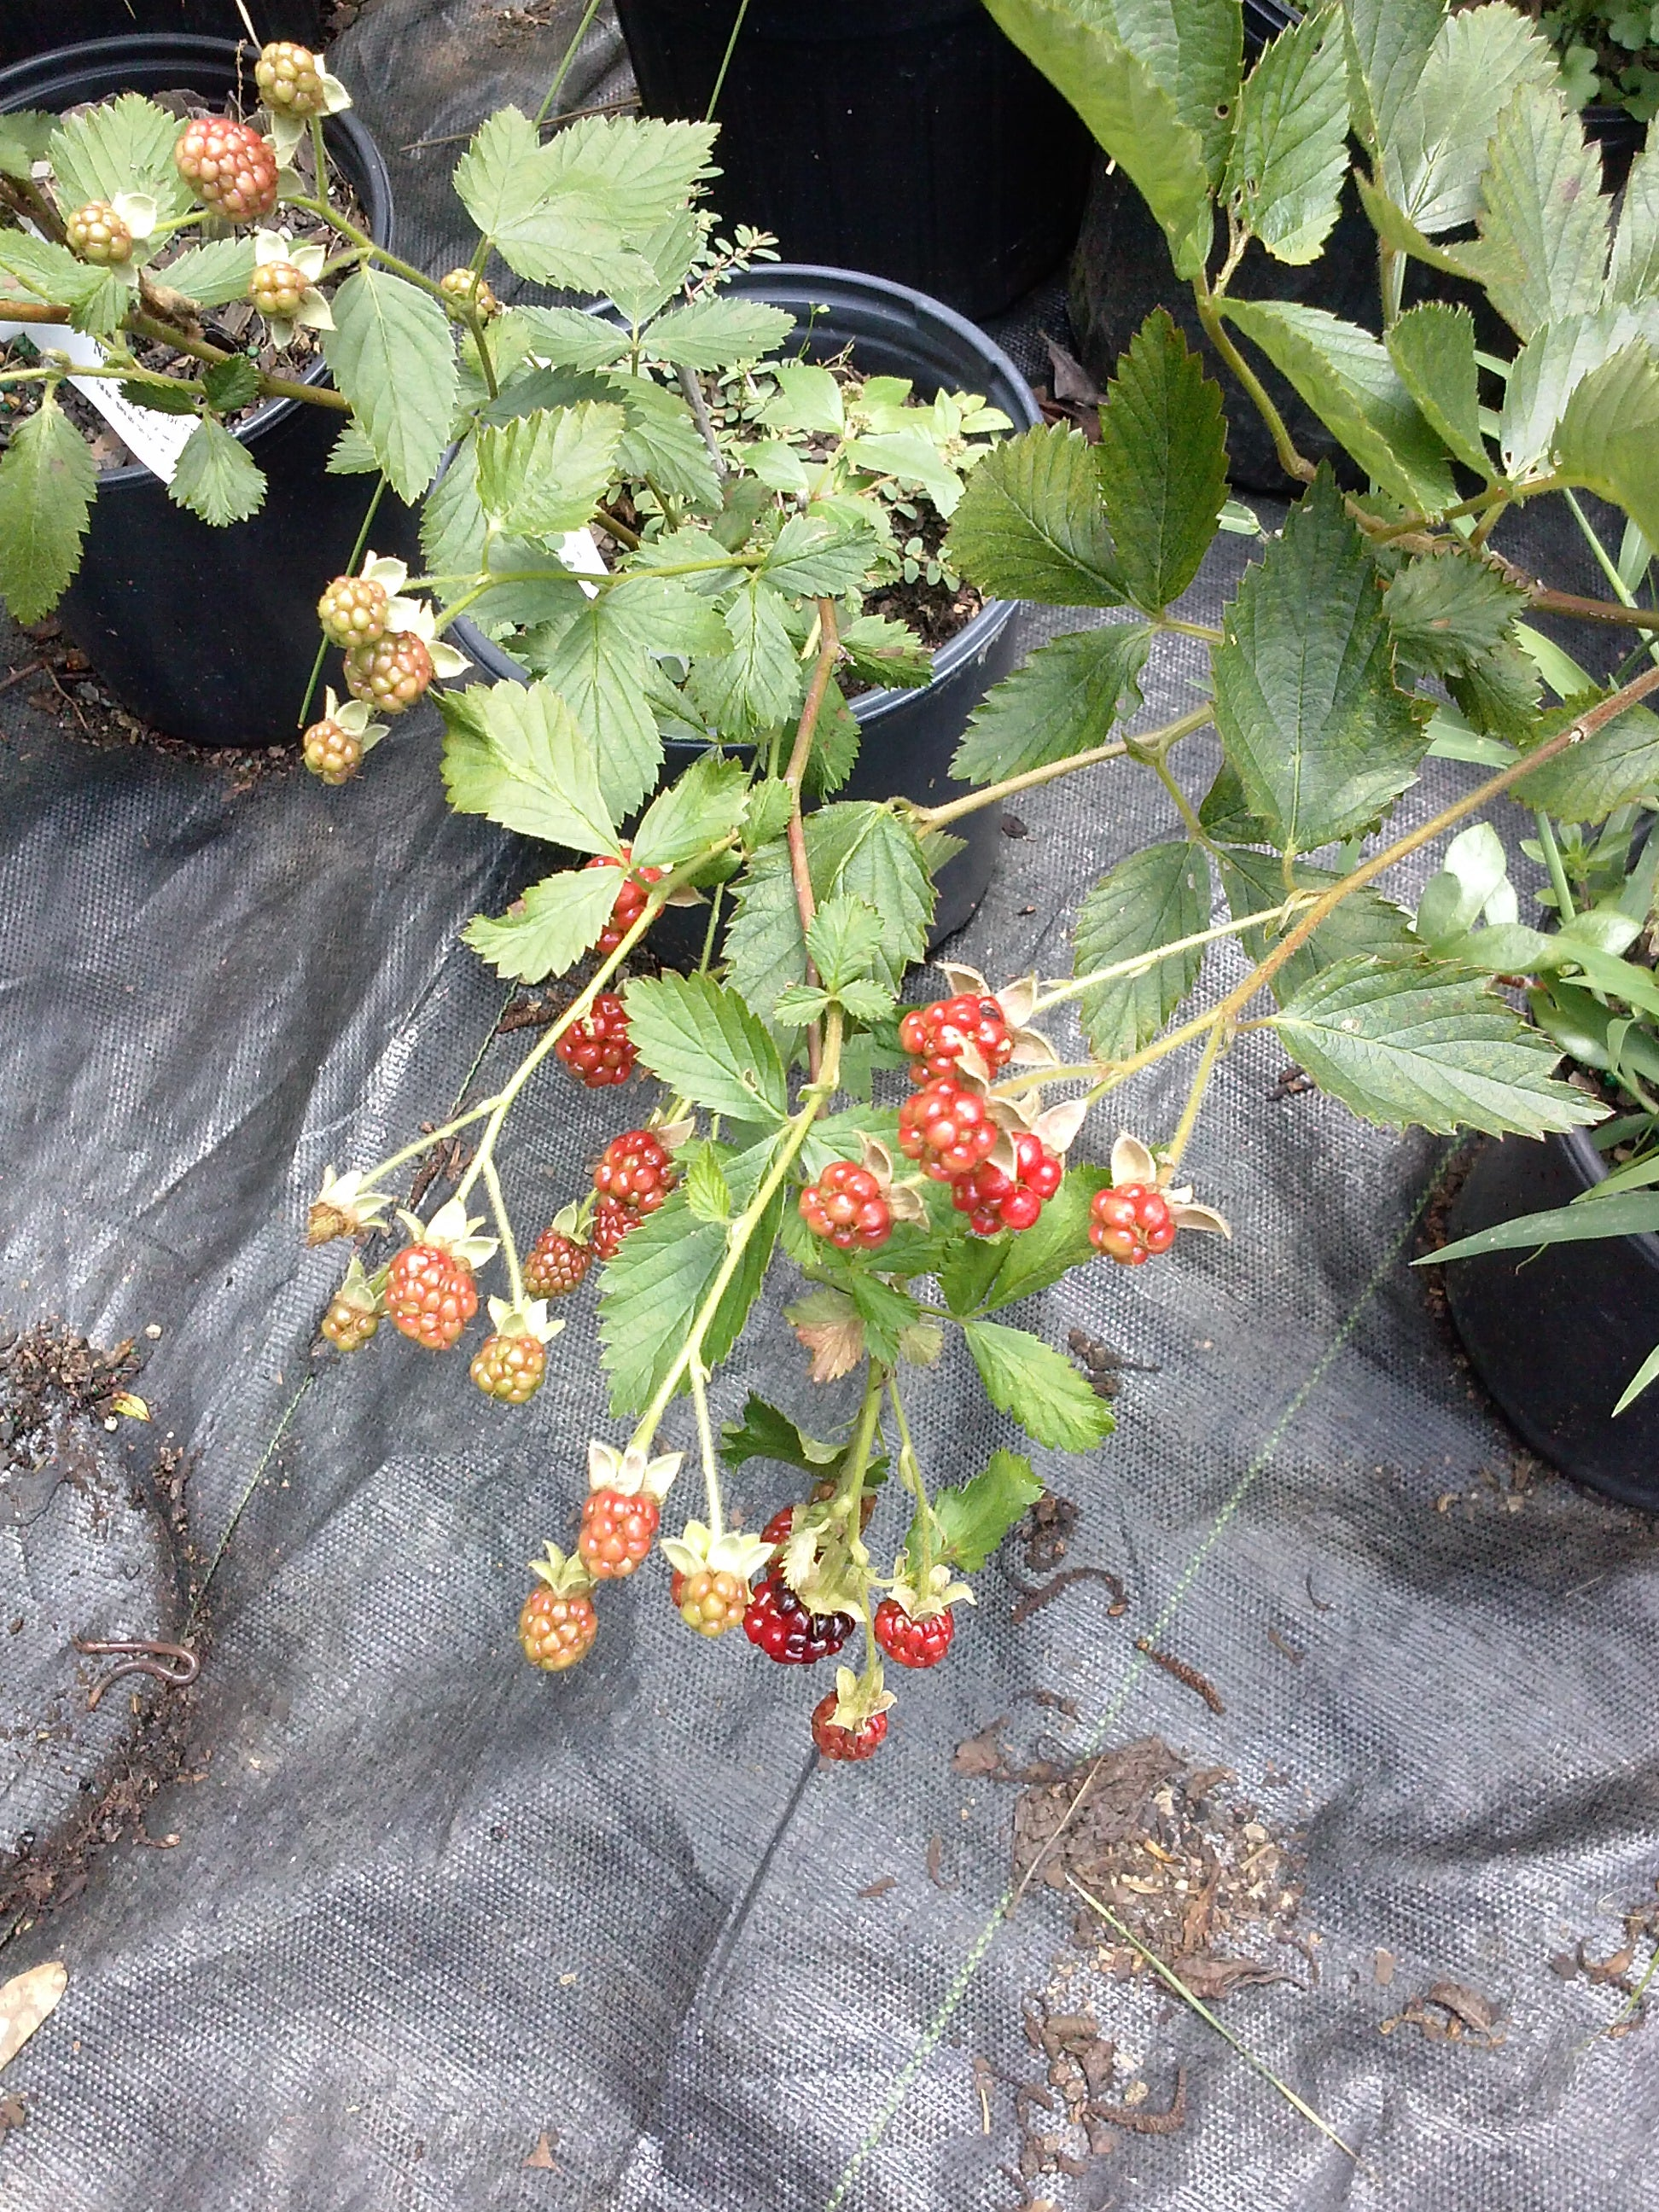 Raspberry Mysore, Excellent Flavored Raspberry Adapted Well to Warmer Regions. Fruits Are Dark-purple/black, with a Sweet (1 Gallon Bareroot Plant)